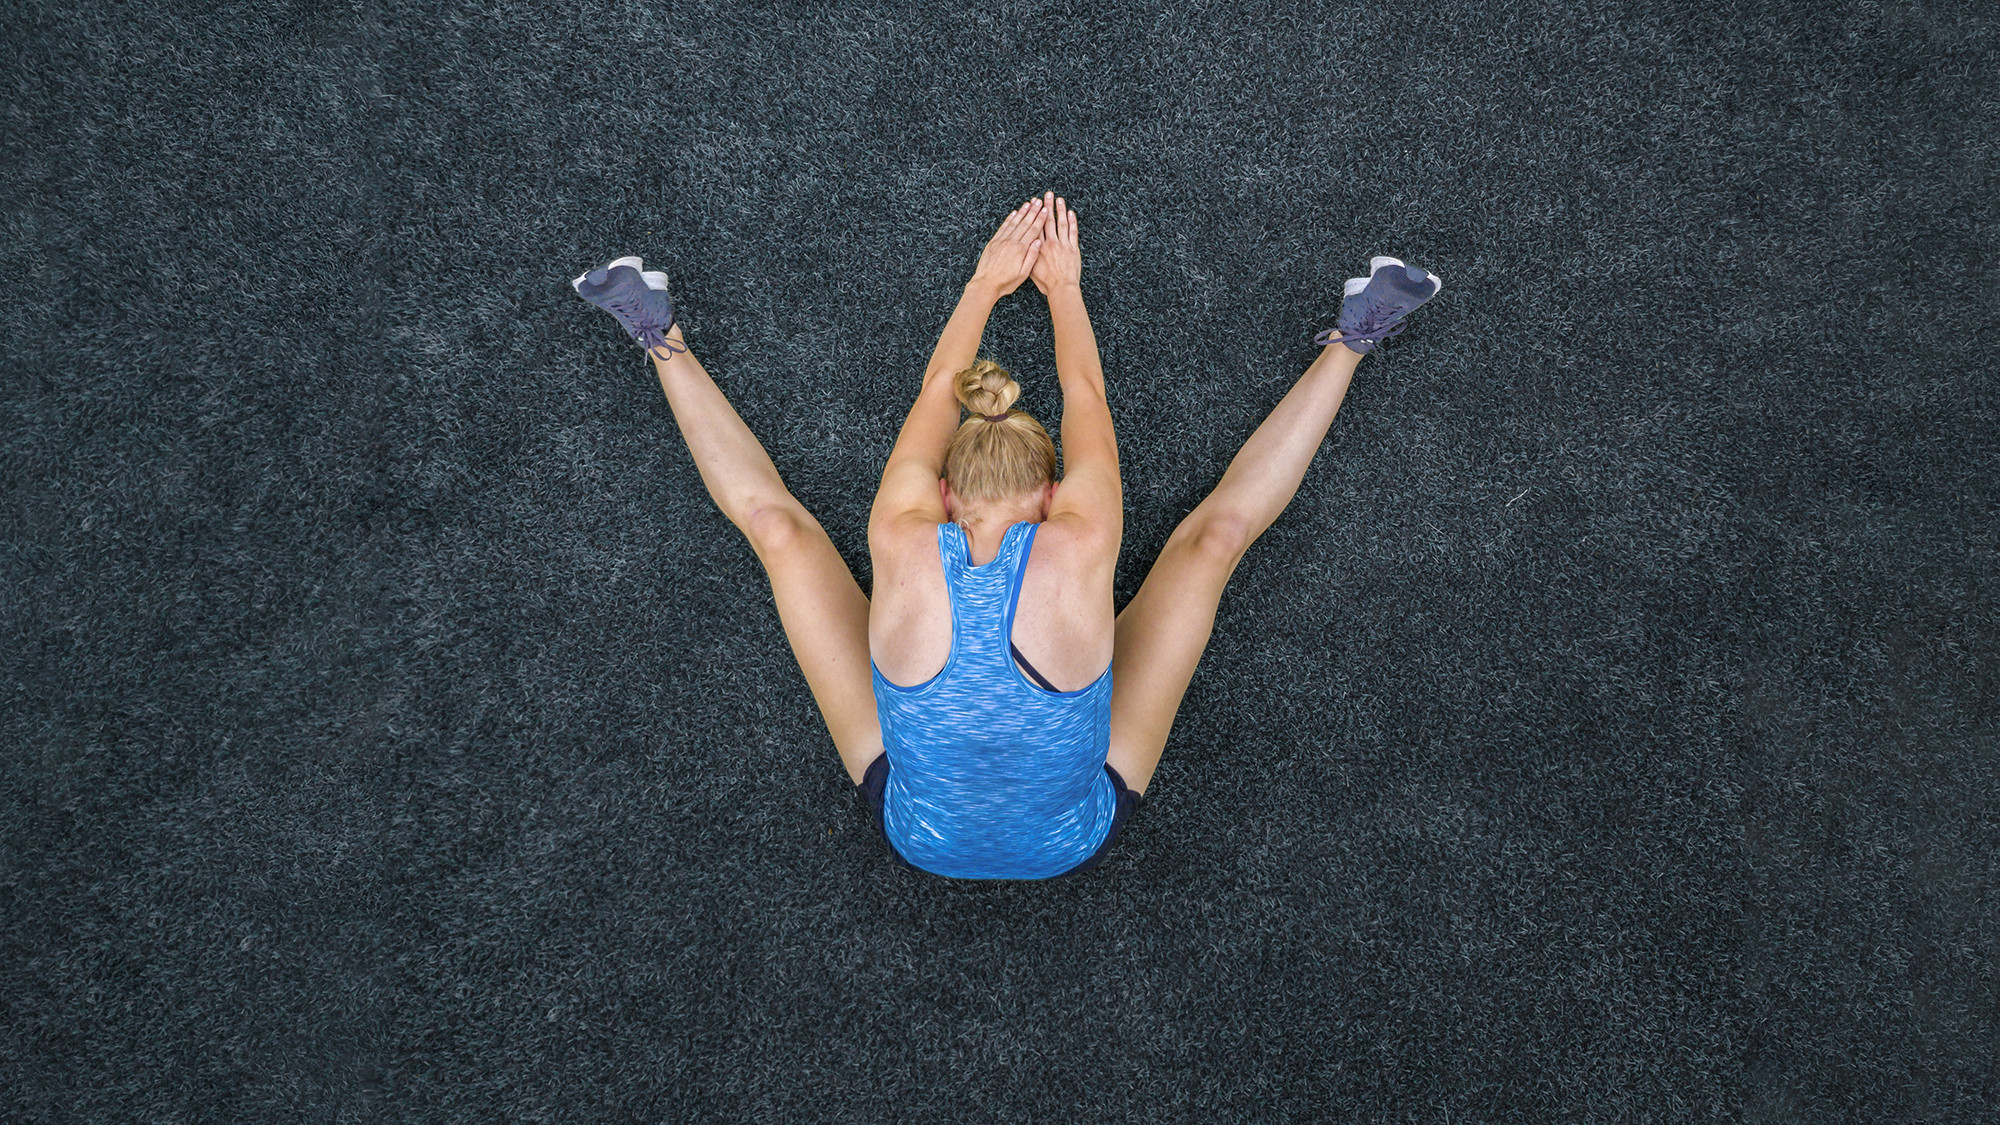 Do you really need to stretch? Science weighs in.